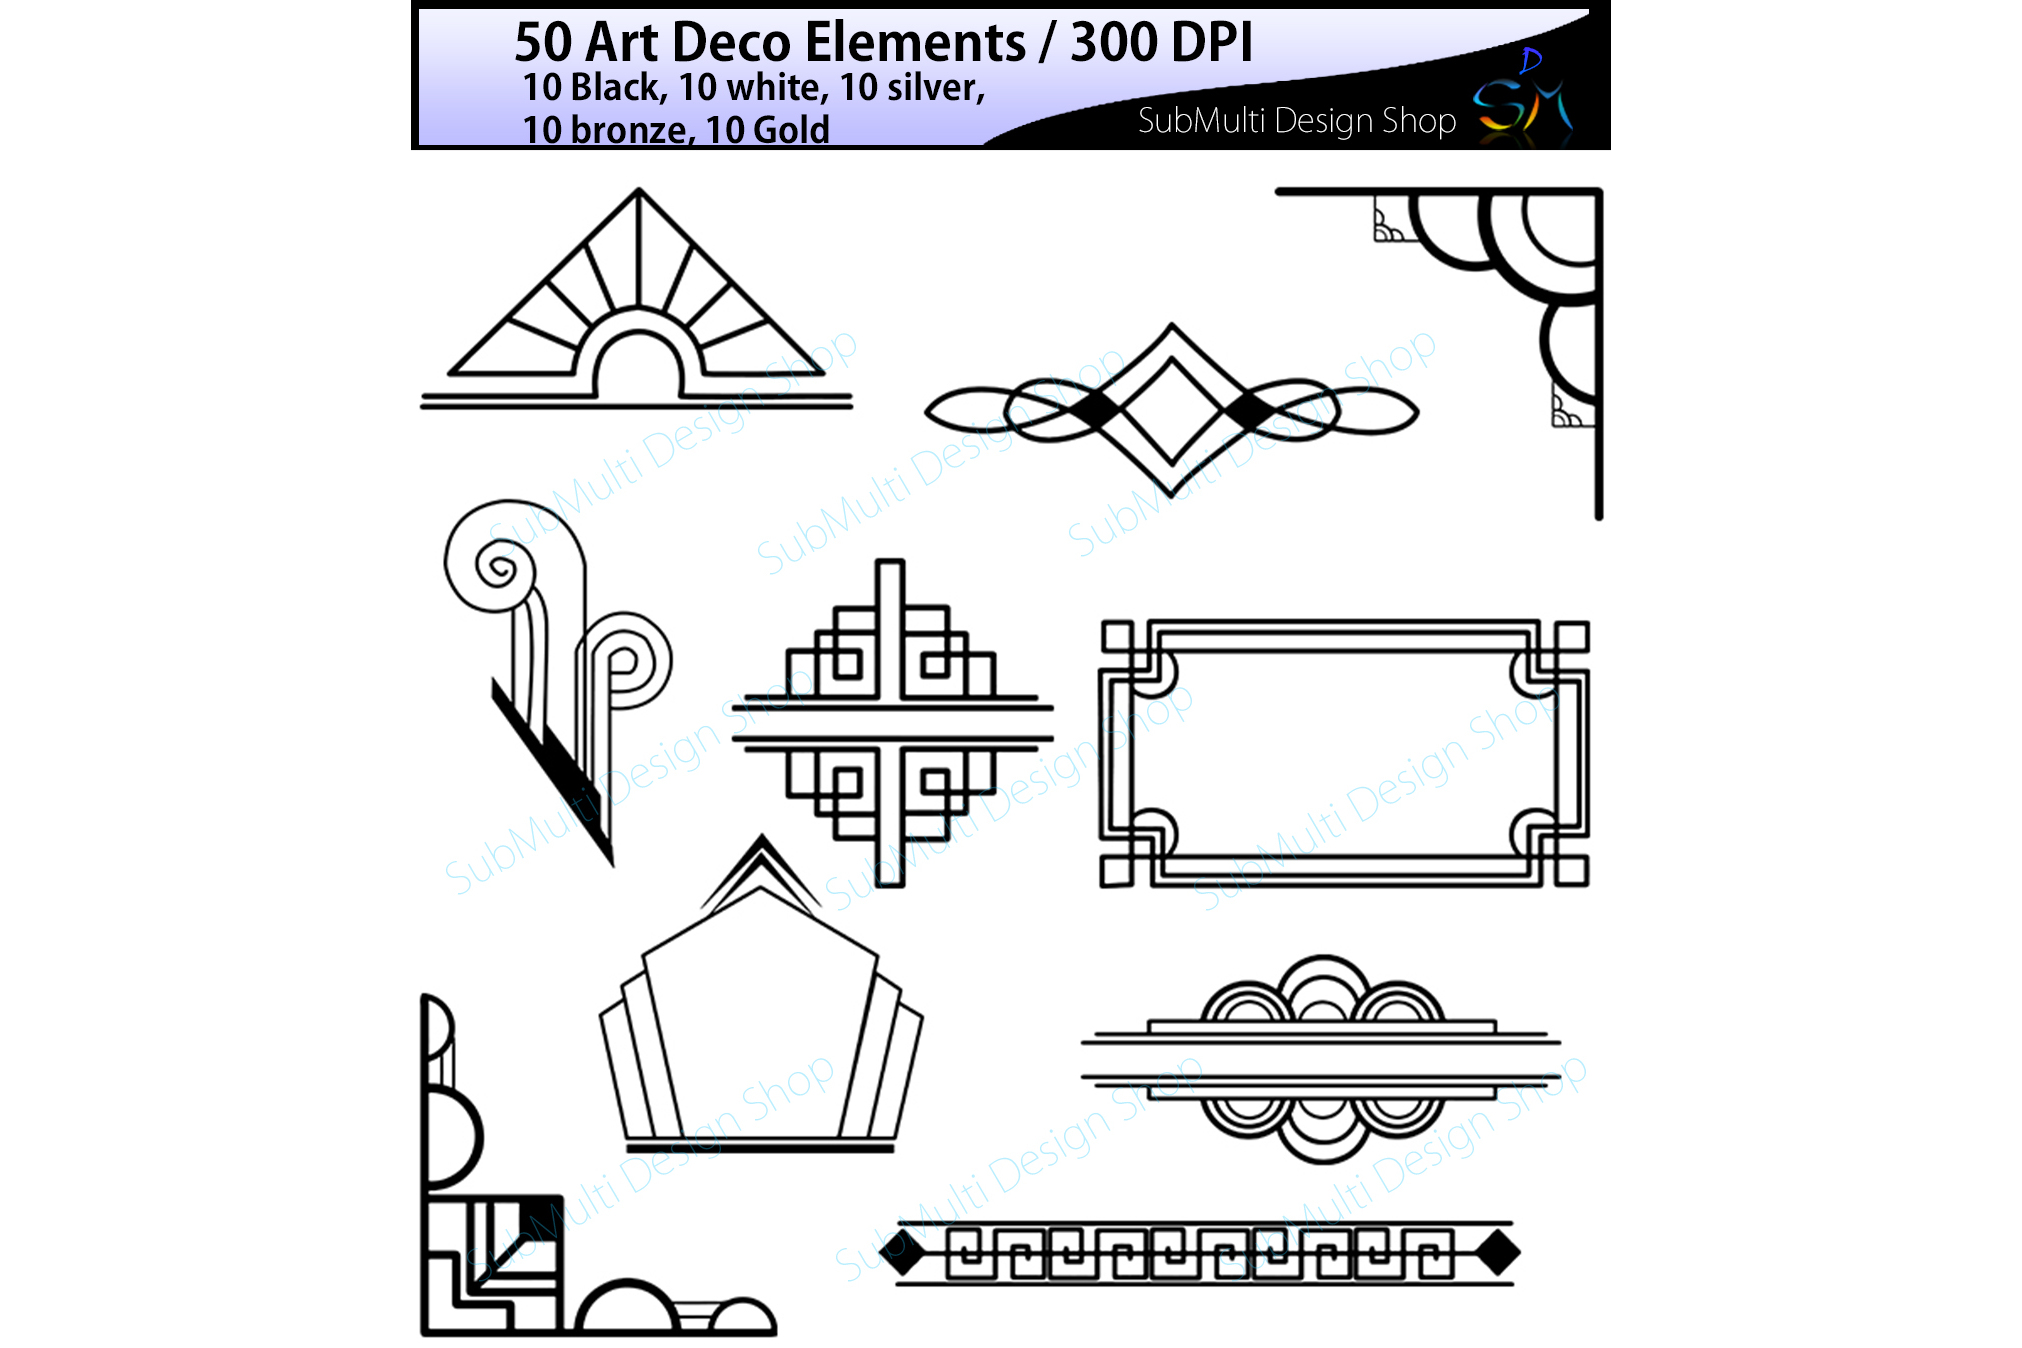 Art deco art deco elements art deco design bundles - Art deco design elements ...